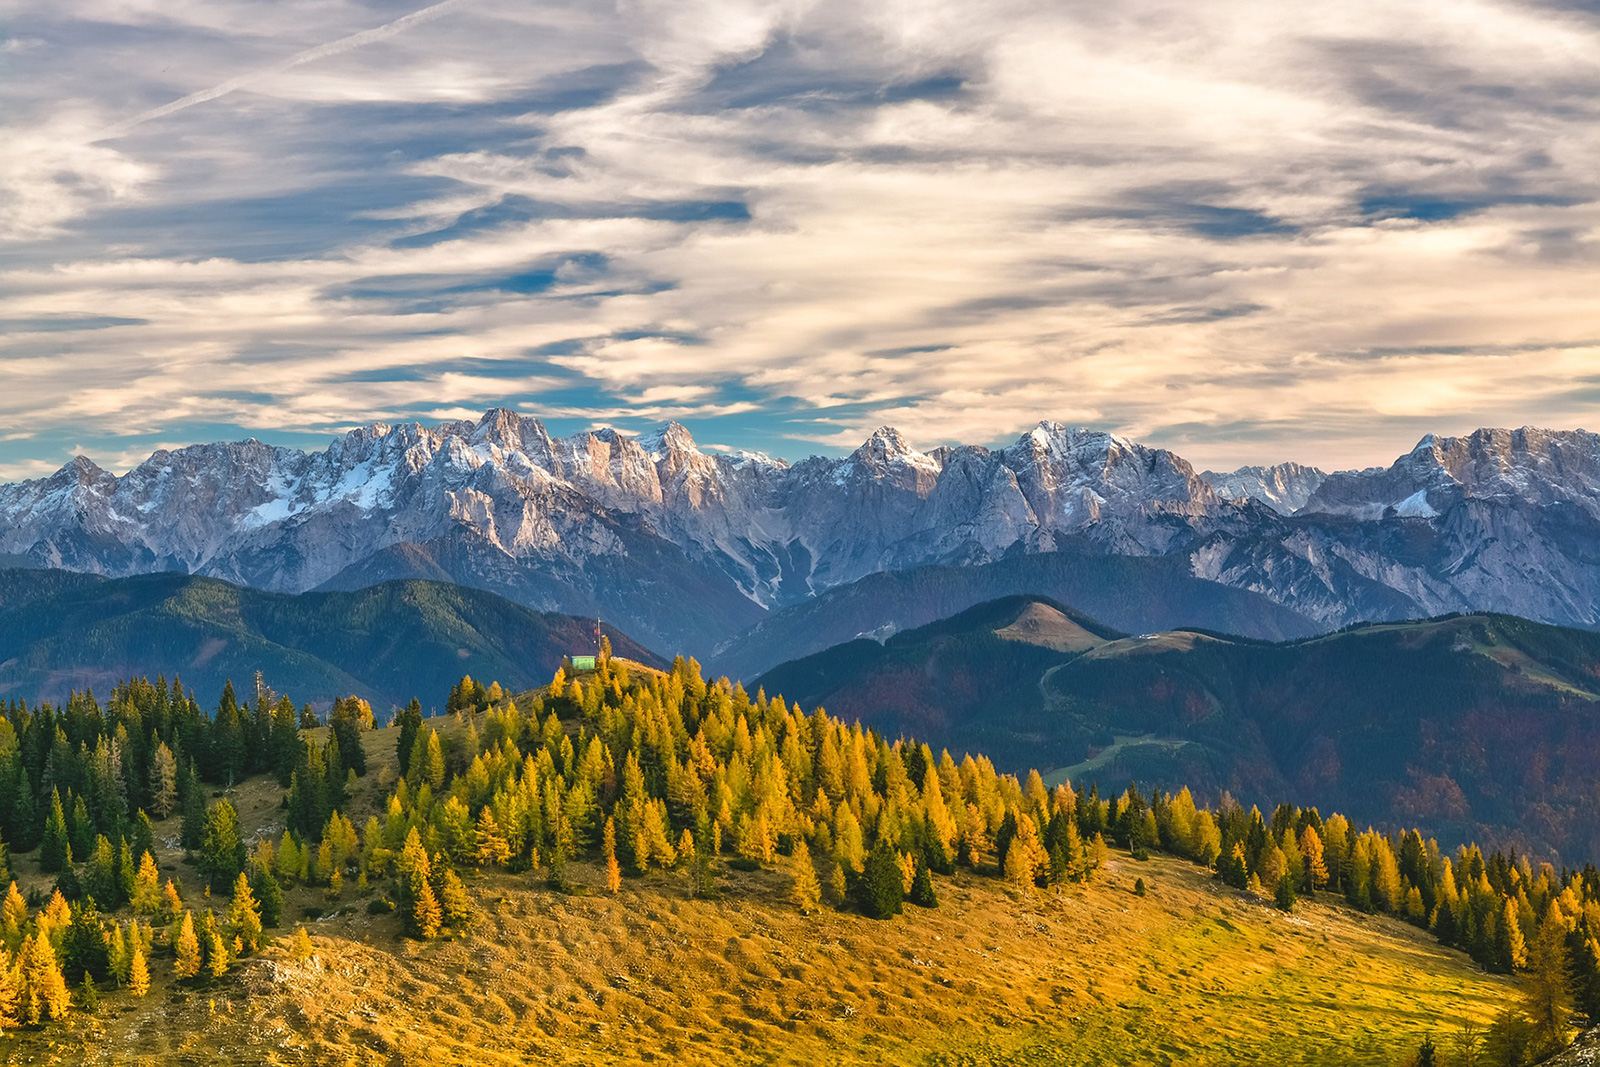 alps_mountain-1244132_1920